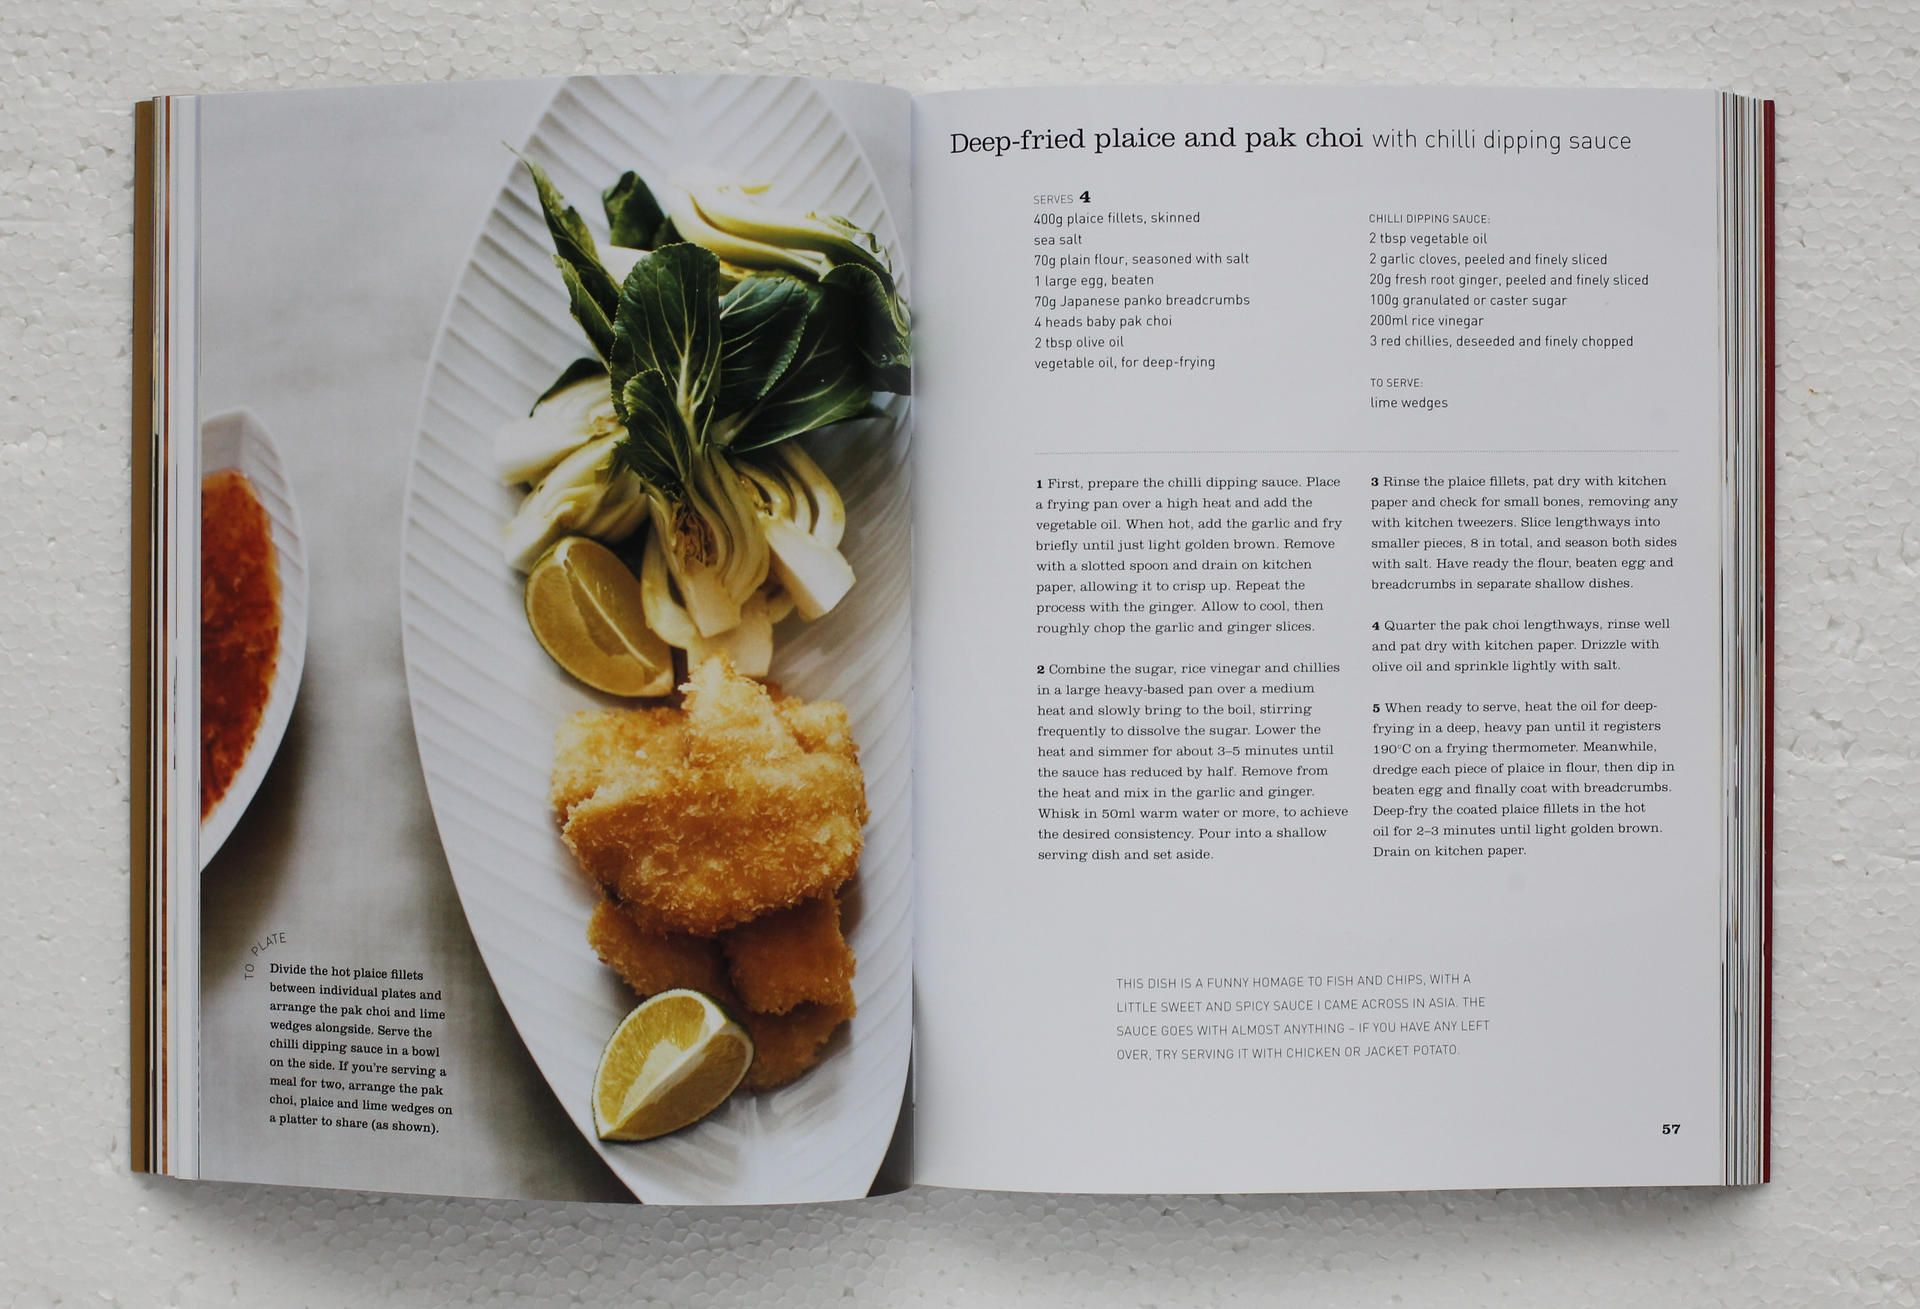 Gourmet food for a fiver deep fried plaice and pak choi recipe gourmet food for a fiver deep fried plaice and pak choi recipe book forumfinder Choice Image